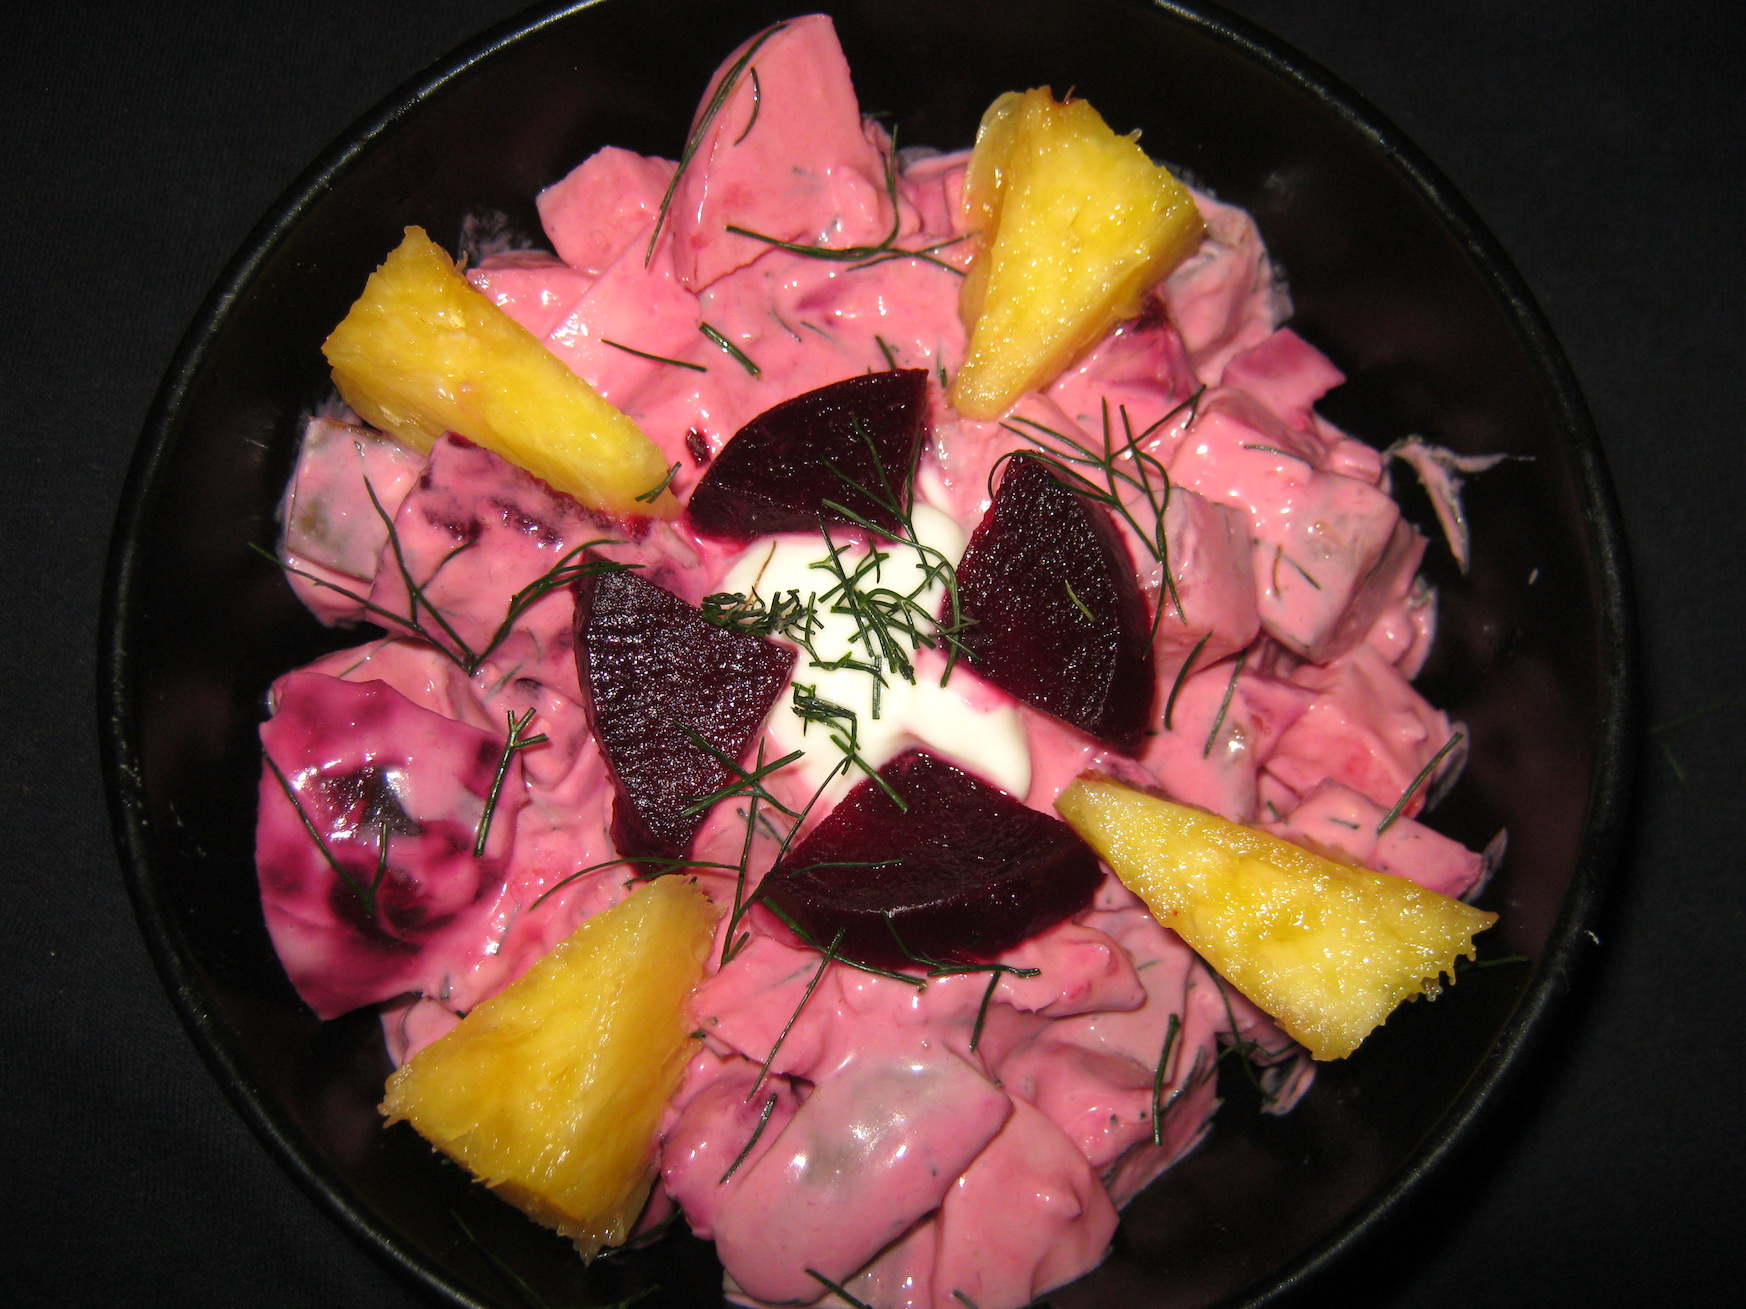 Red Herring Salad / Roter Heringssalat garnished with beetroot and pineapple